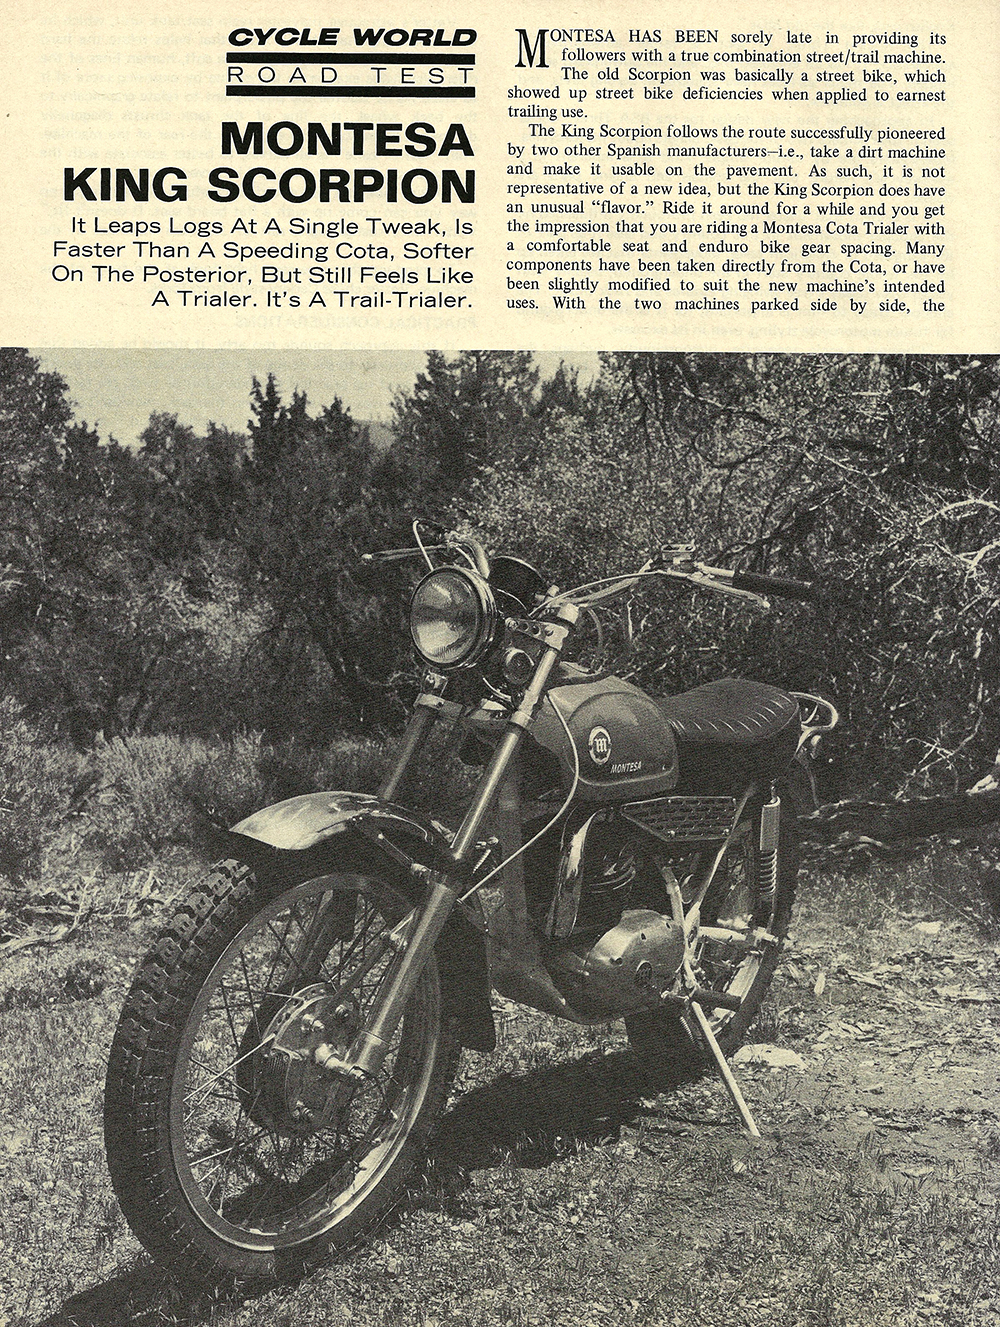 1970 Montesa King Scorpion road test 01.jpg